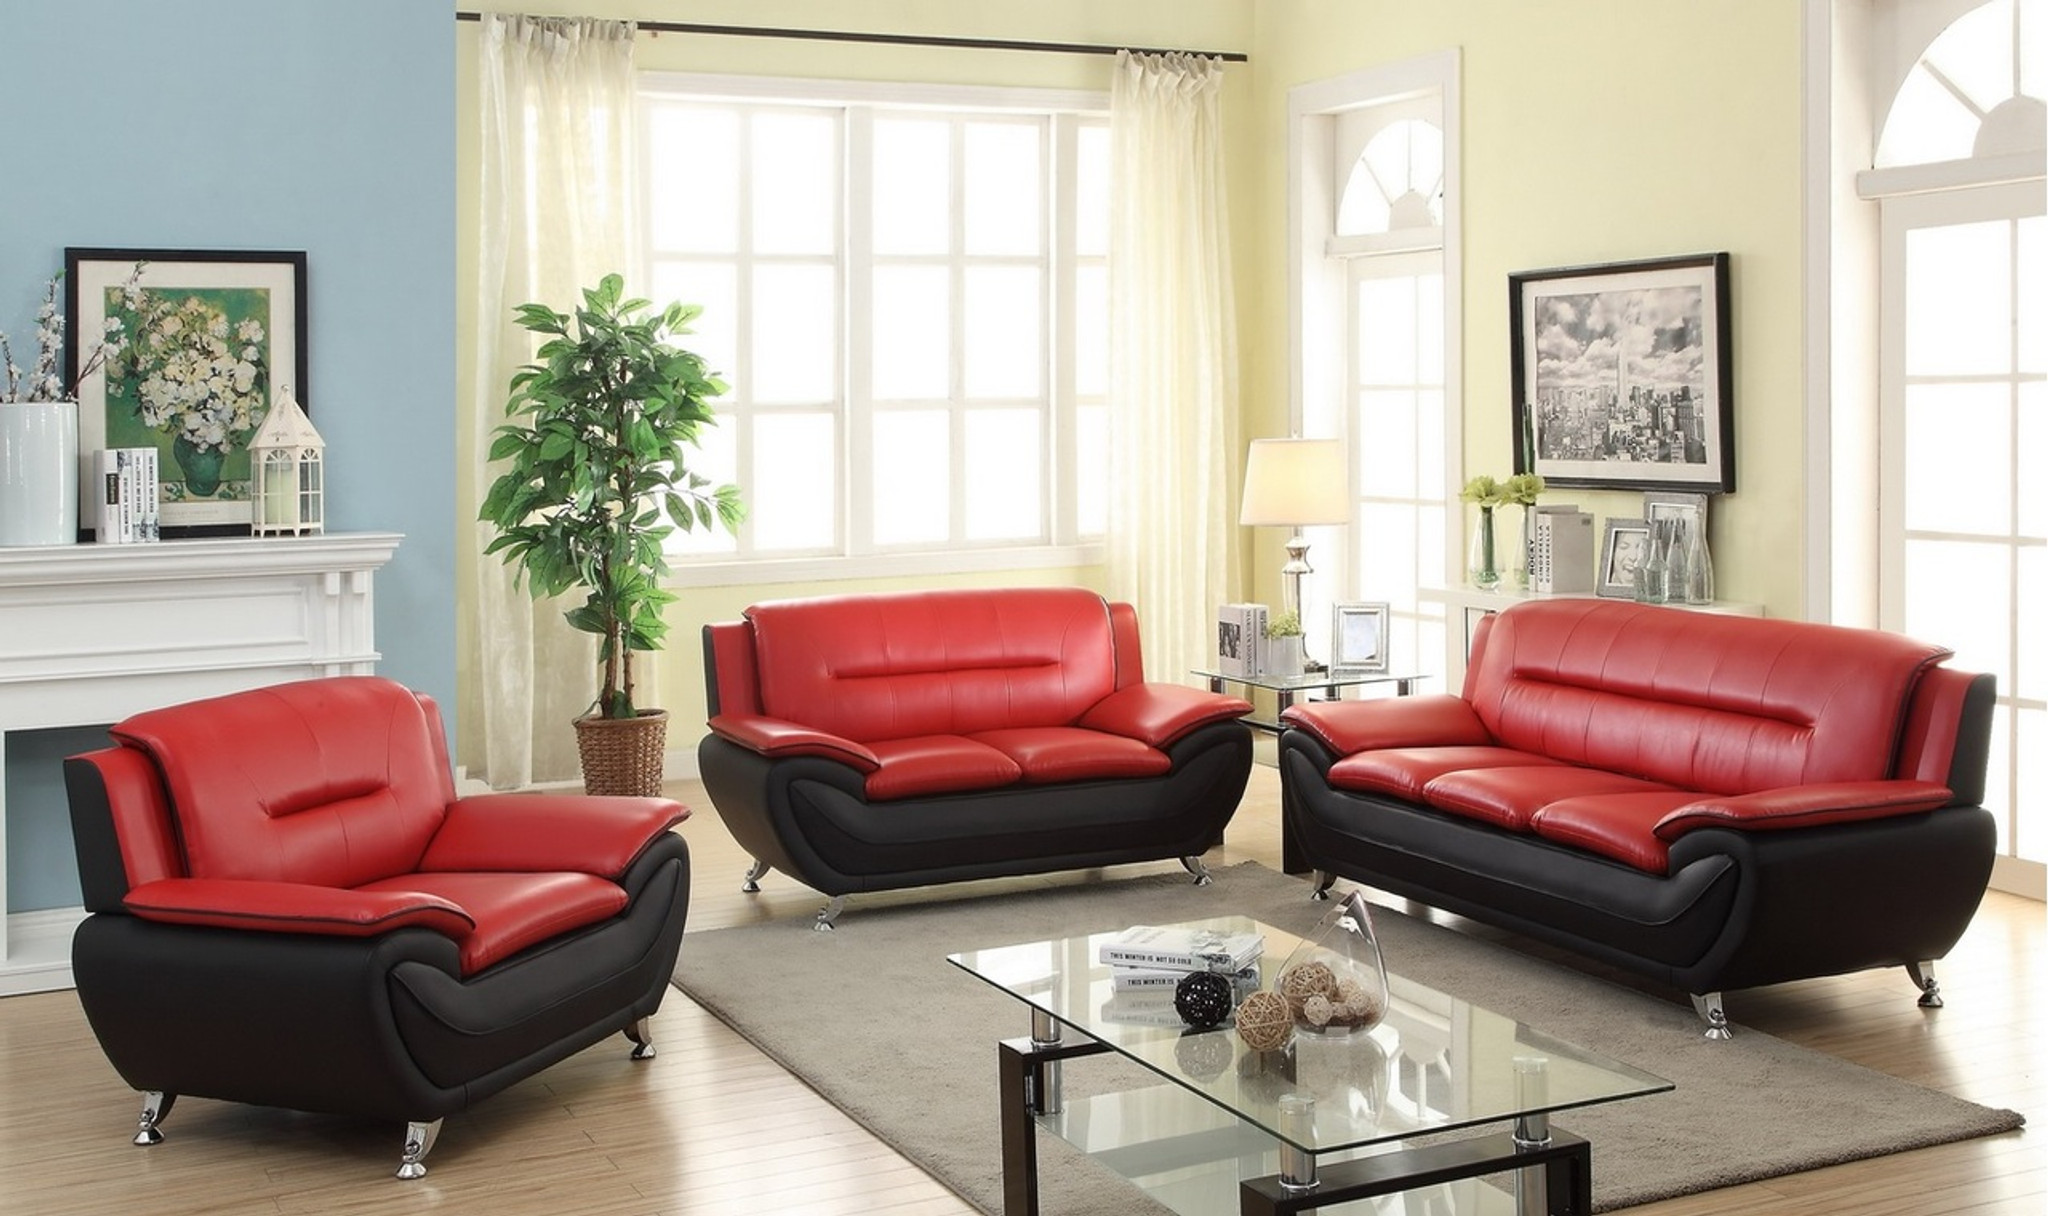 LONDON BLACK AND RED LIVING ROOM SET (2PCs) SOFA LOVESEAT - Kassa ...